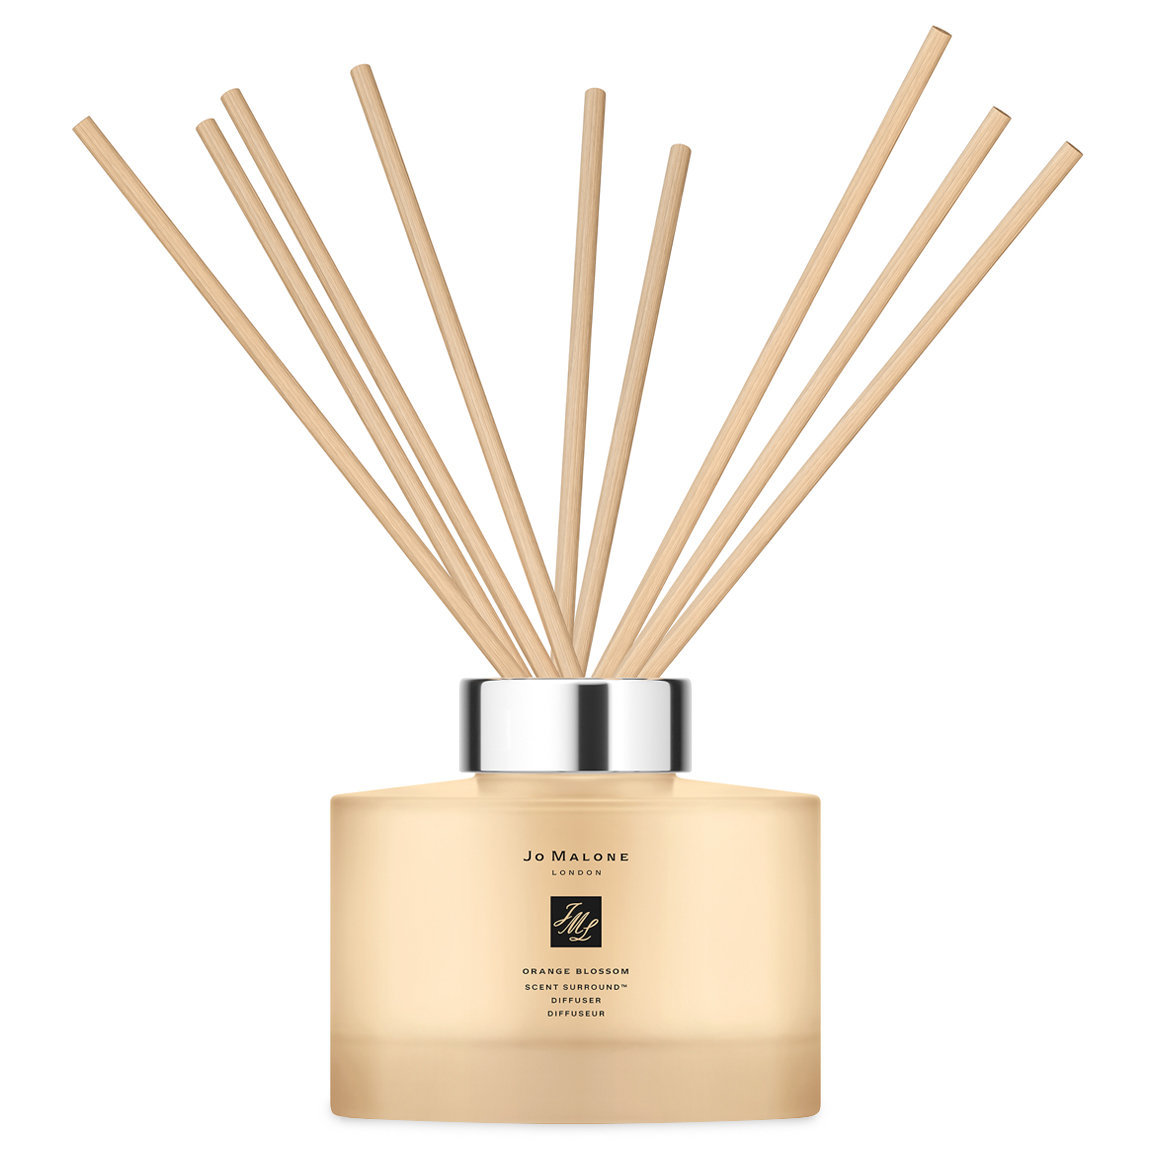 Jo Malone London Orange Blossom Scent Surround Diffuser alternative view 1 - product swatch.